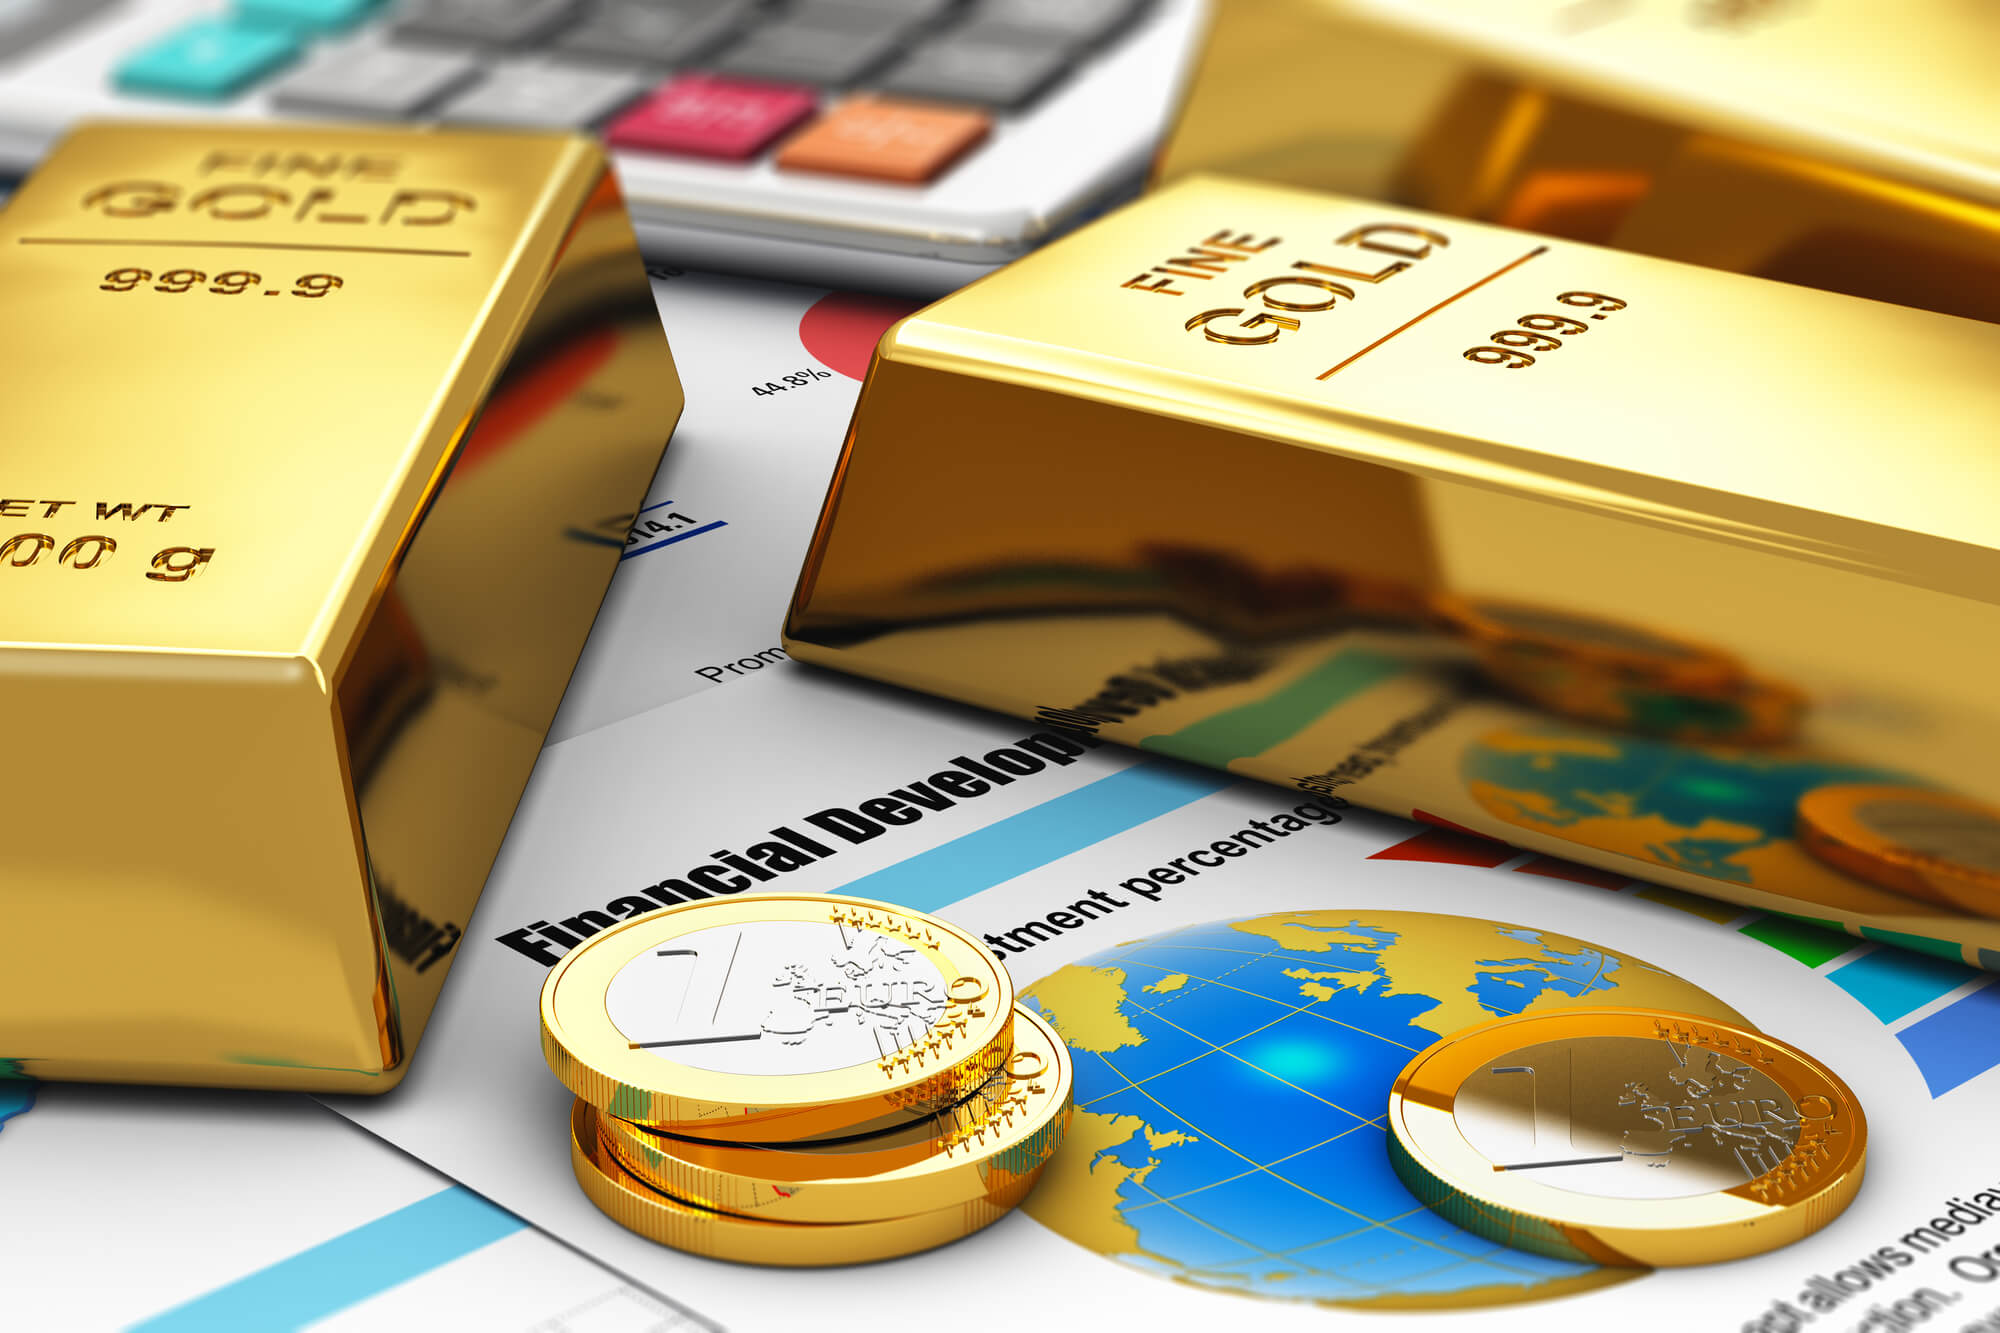 where is the best place to buy gold in west palm beach?